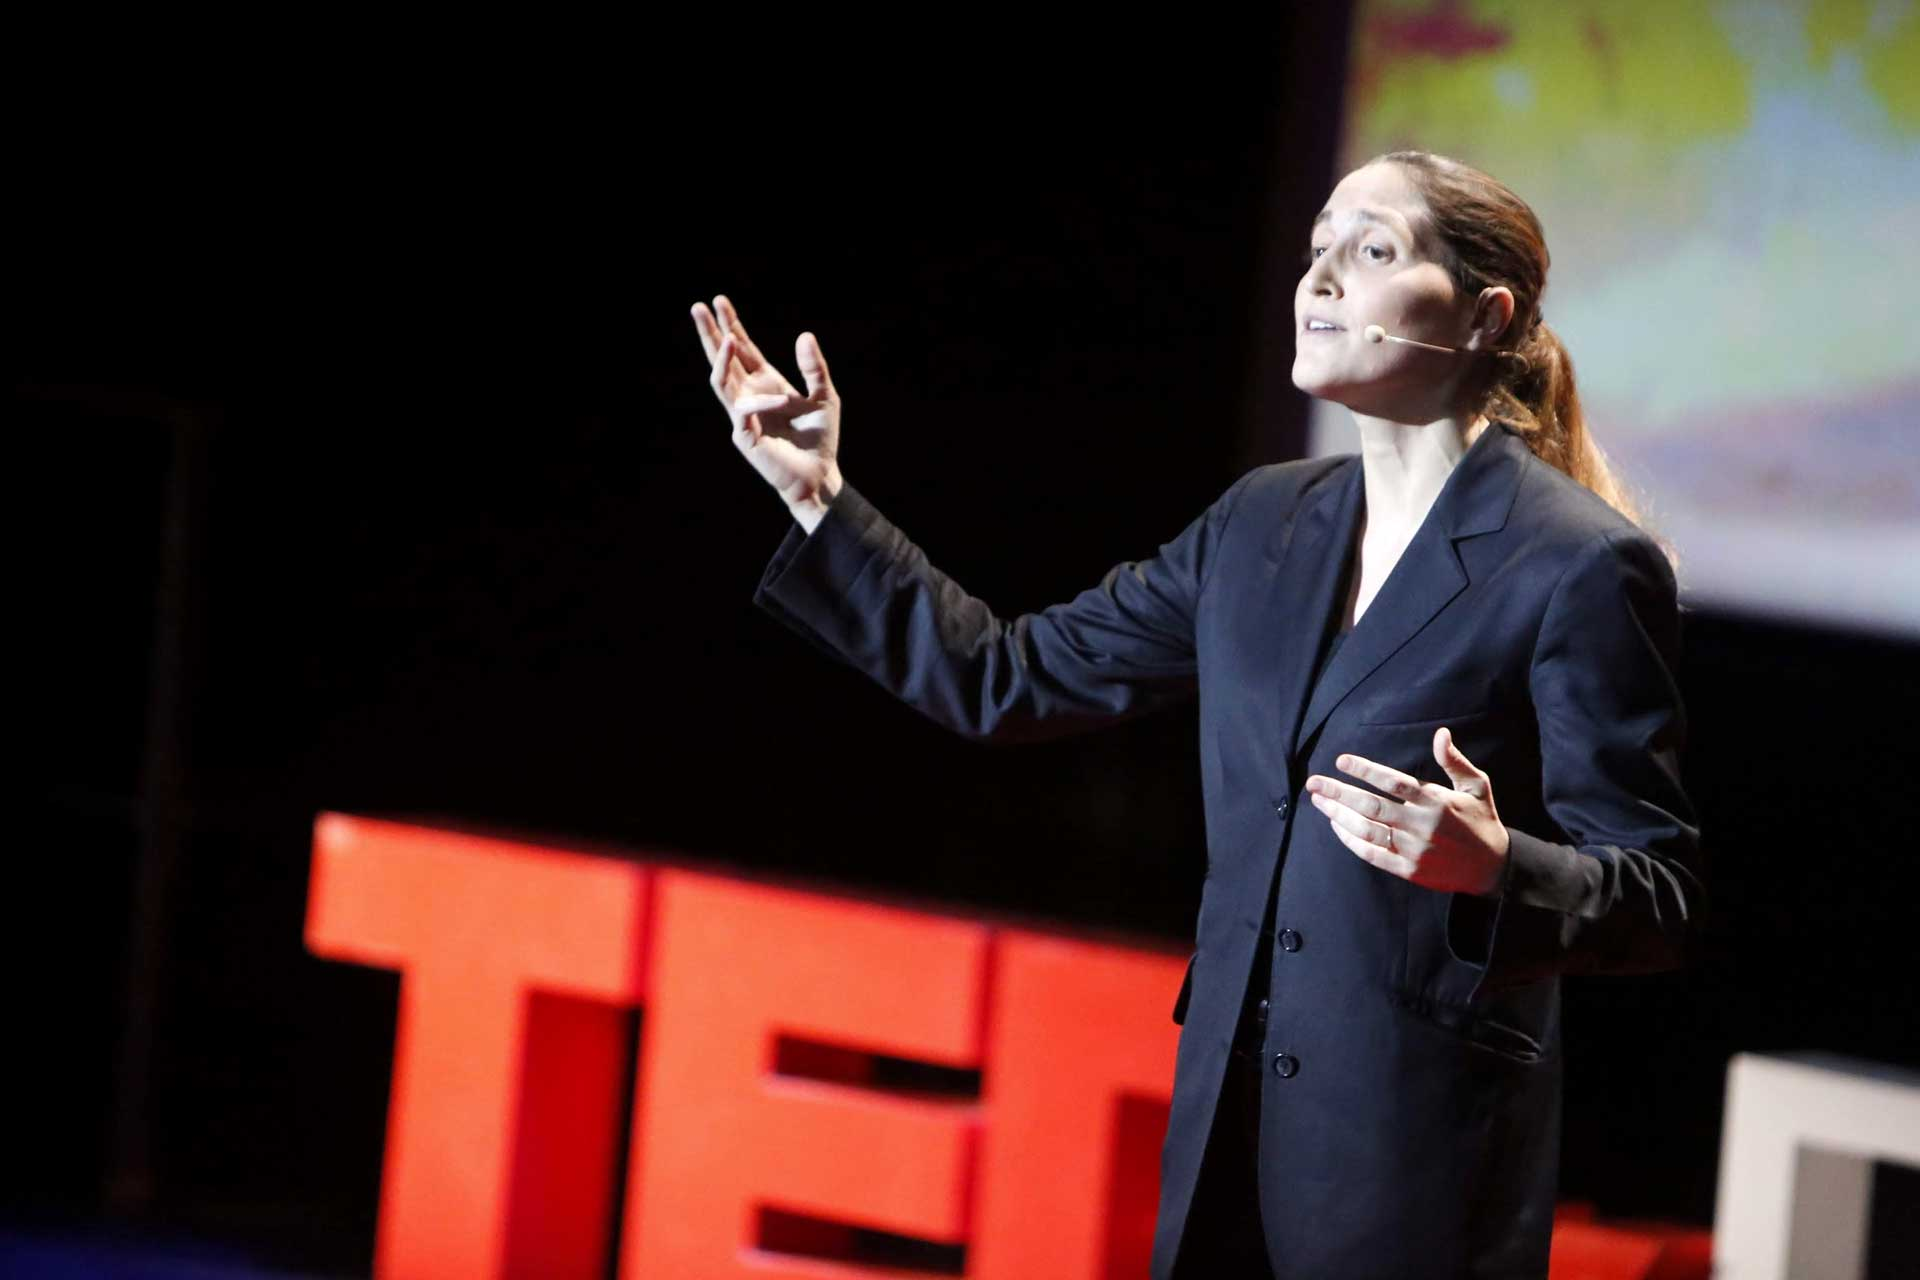 conference-TEDxParis-2013-9.jpg